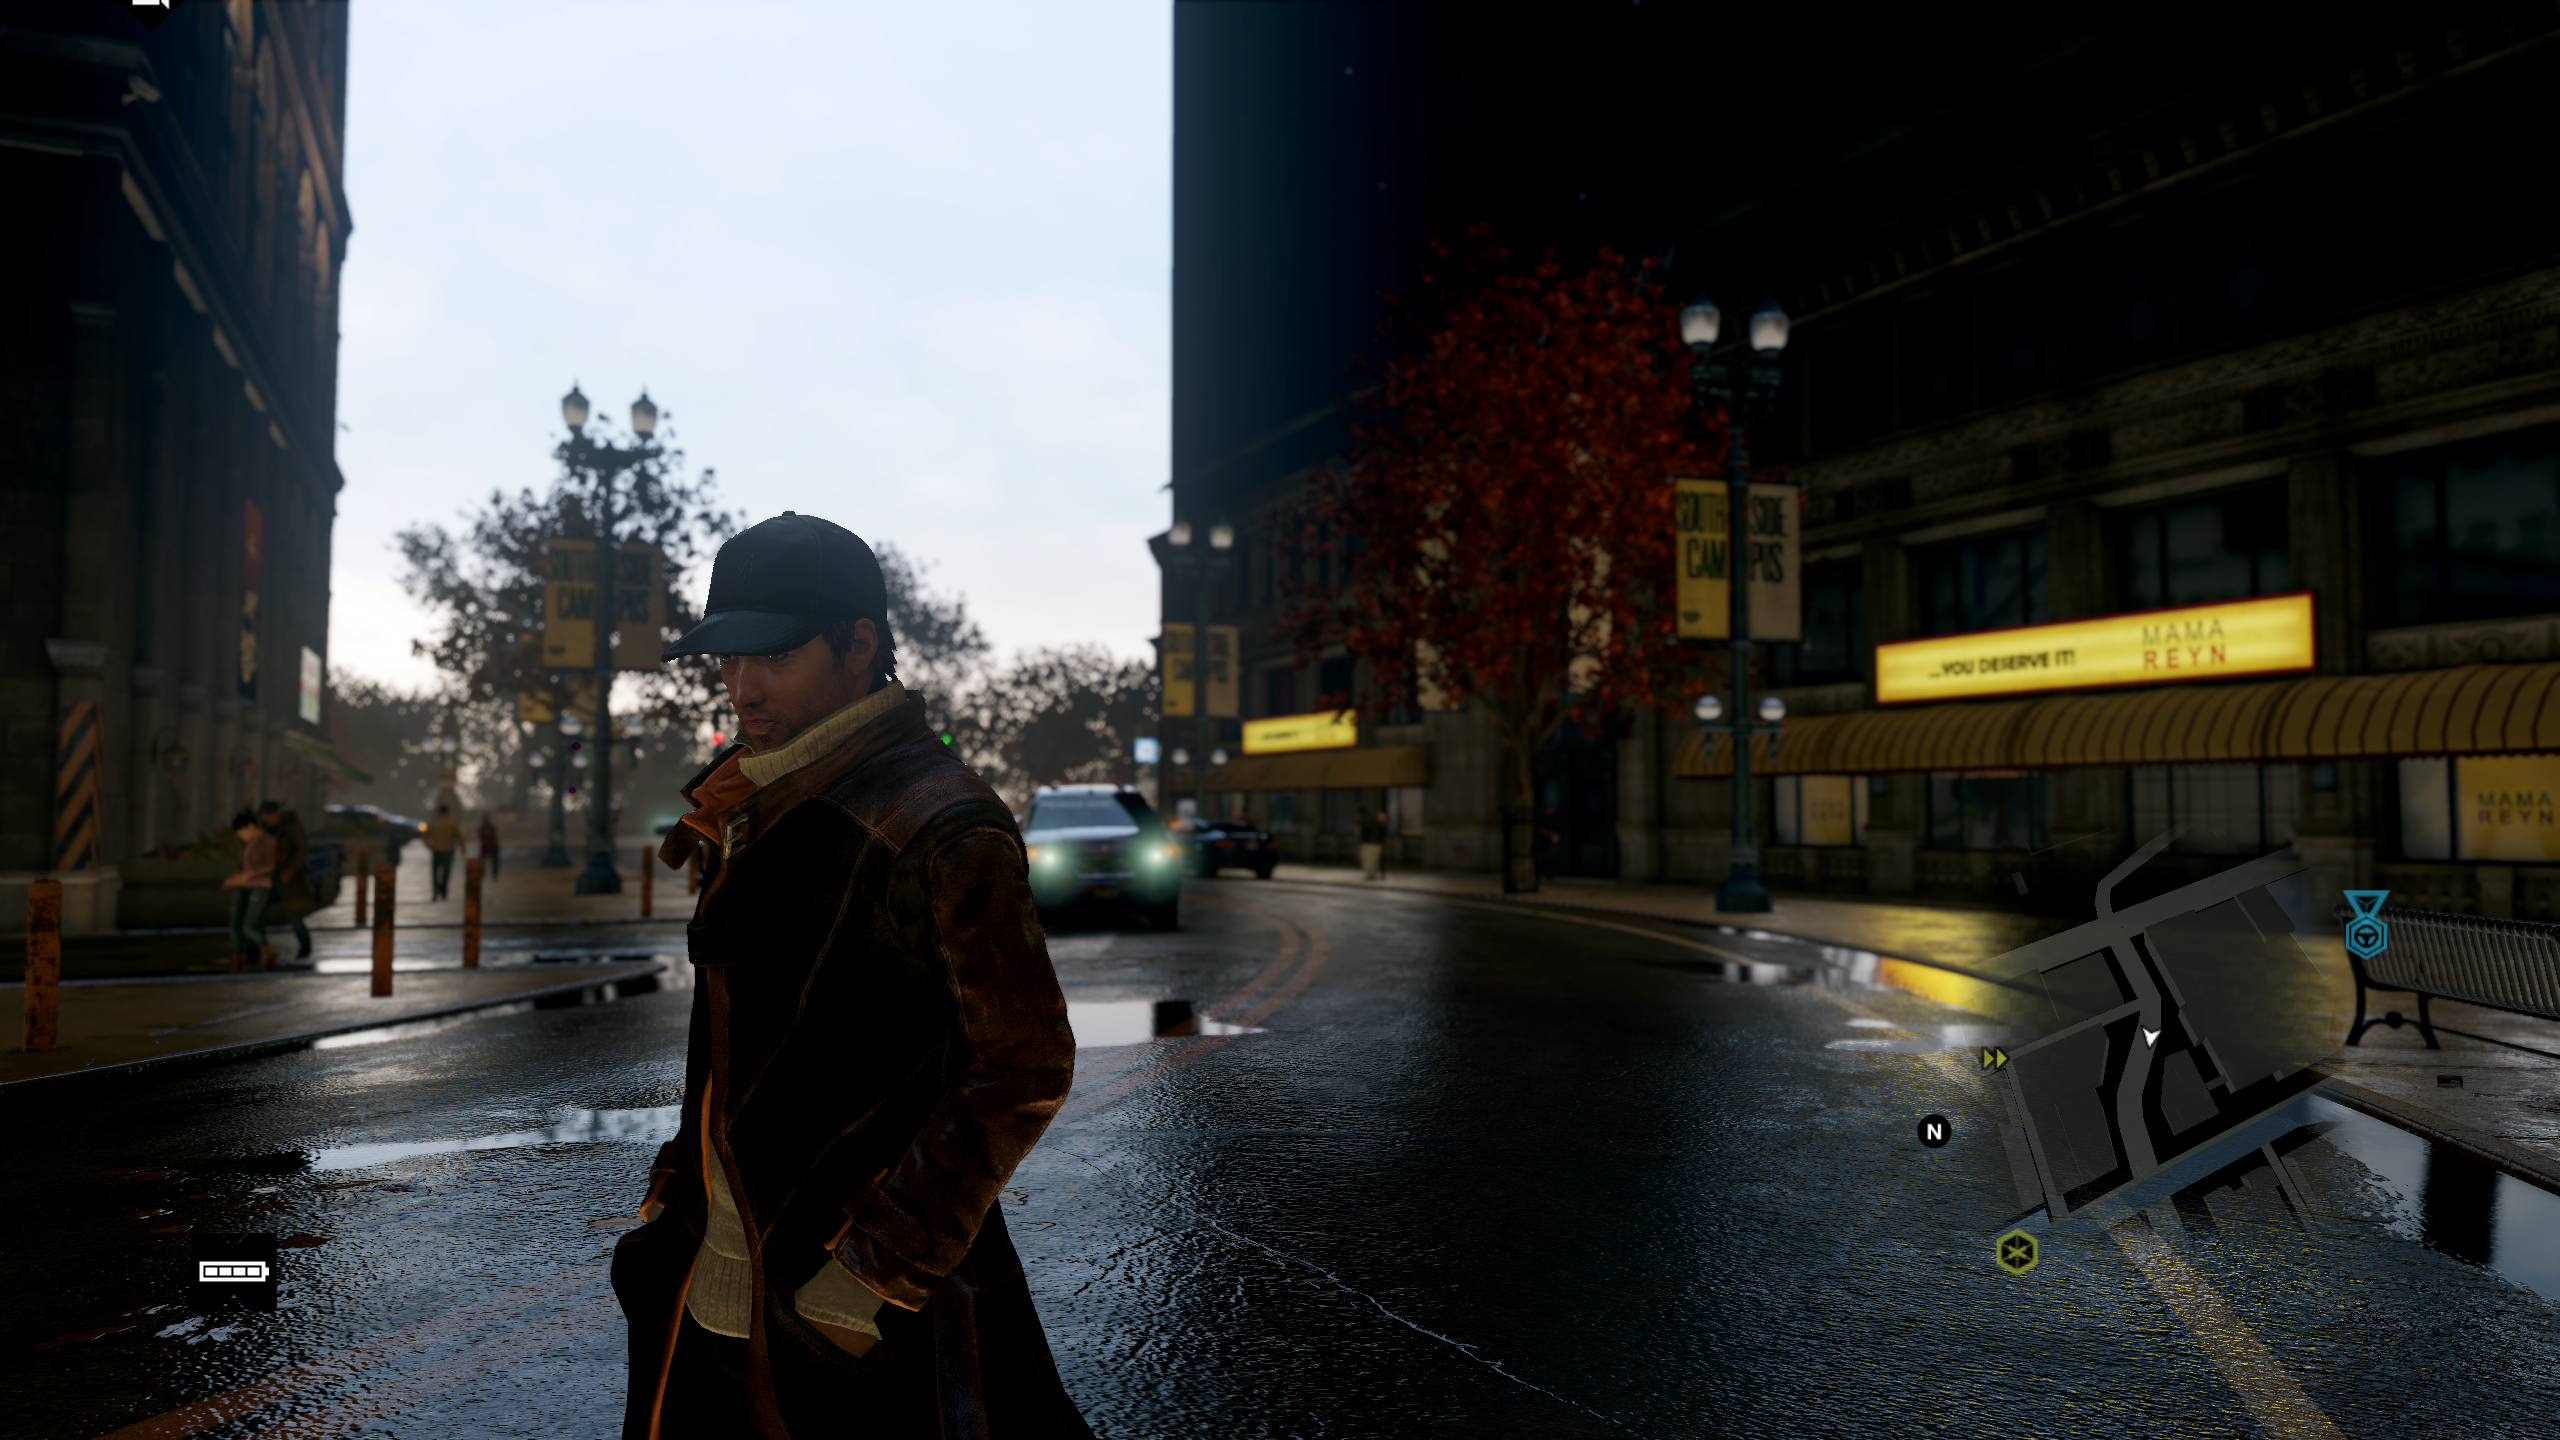 Watch_Dogs_2014_06_27_15_42_00_349.png